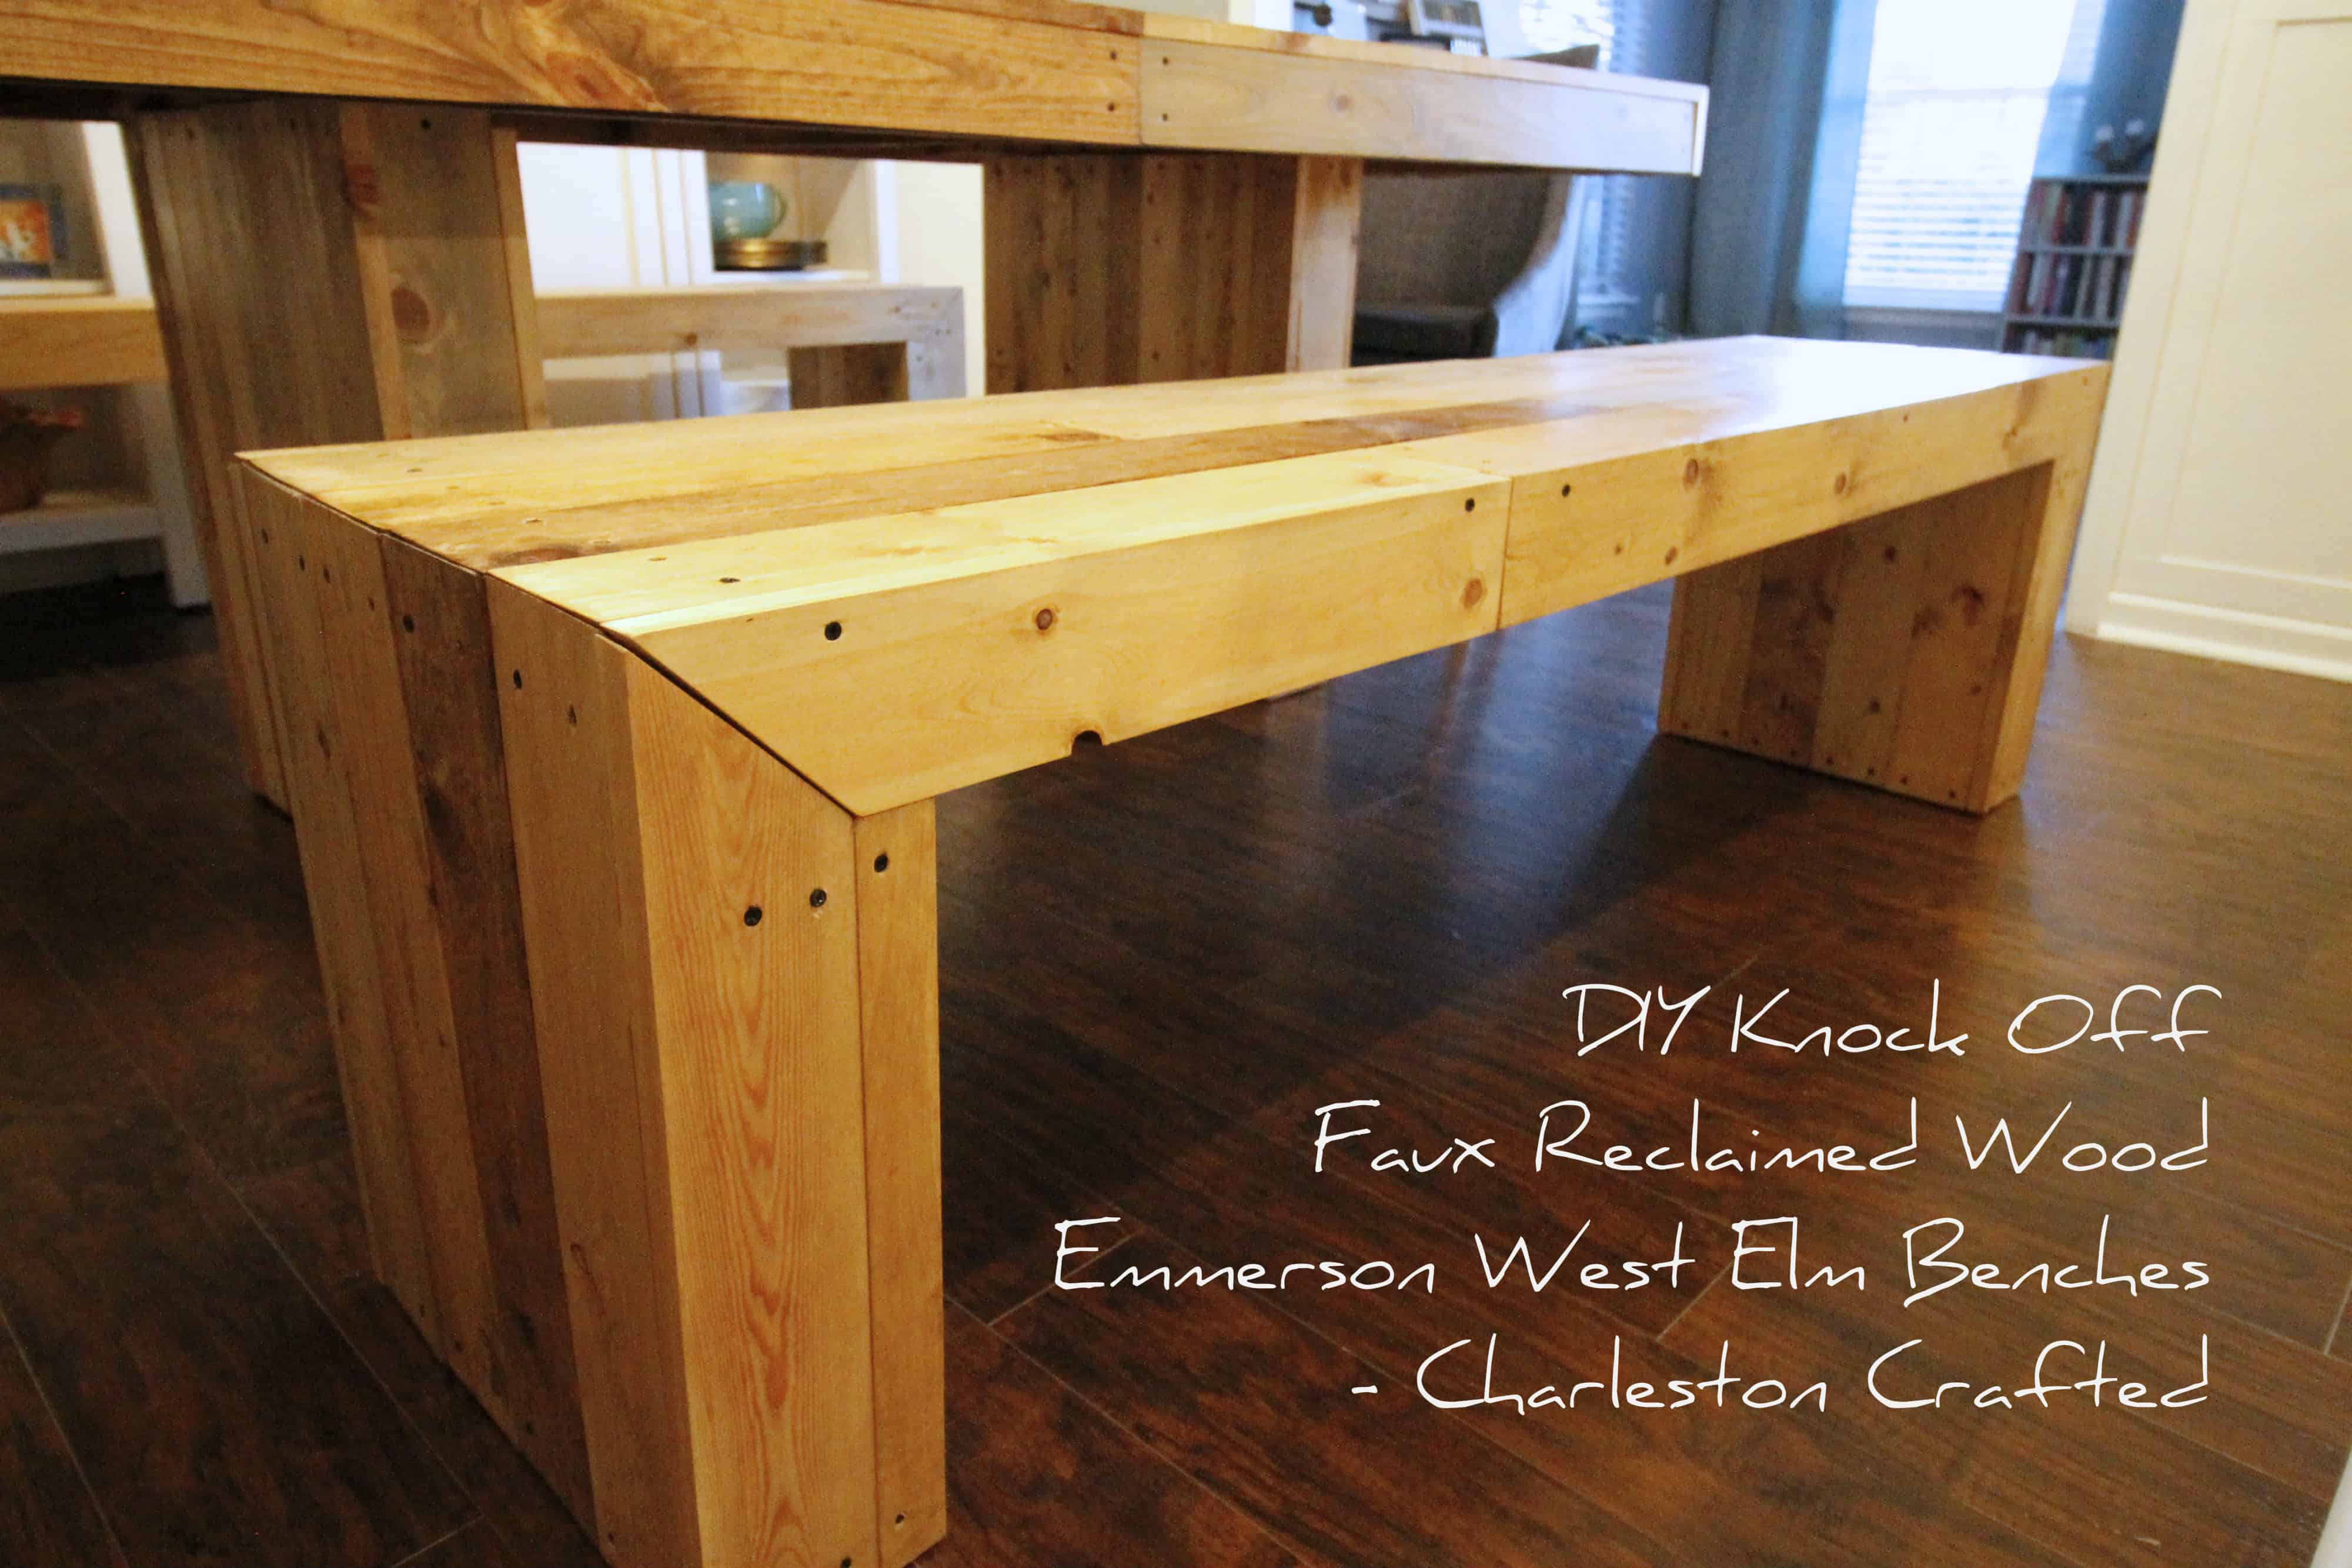 diy furniture west elm knock. beautiful knock diy knock off faux reclaimed wood emmerson west elm benches u2022 charleston  crafted throughout diy furniture